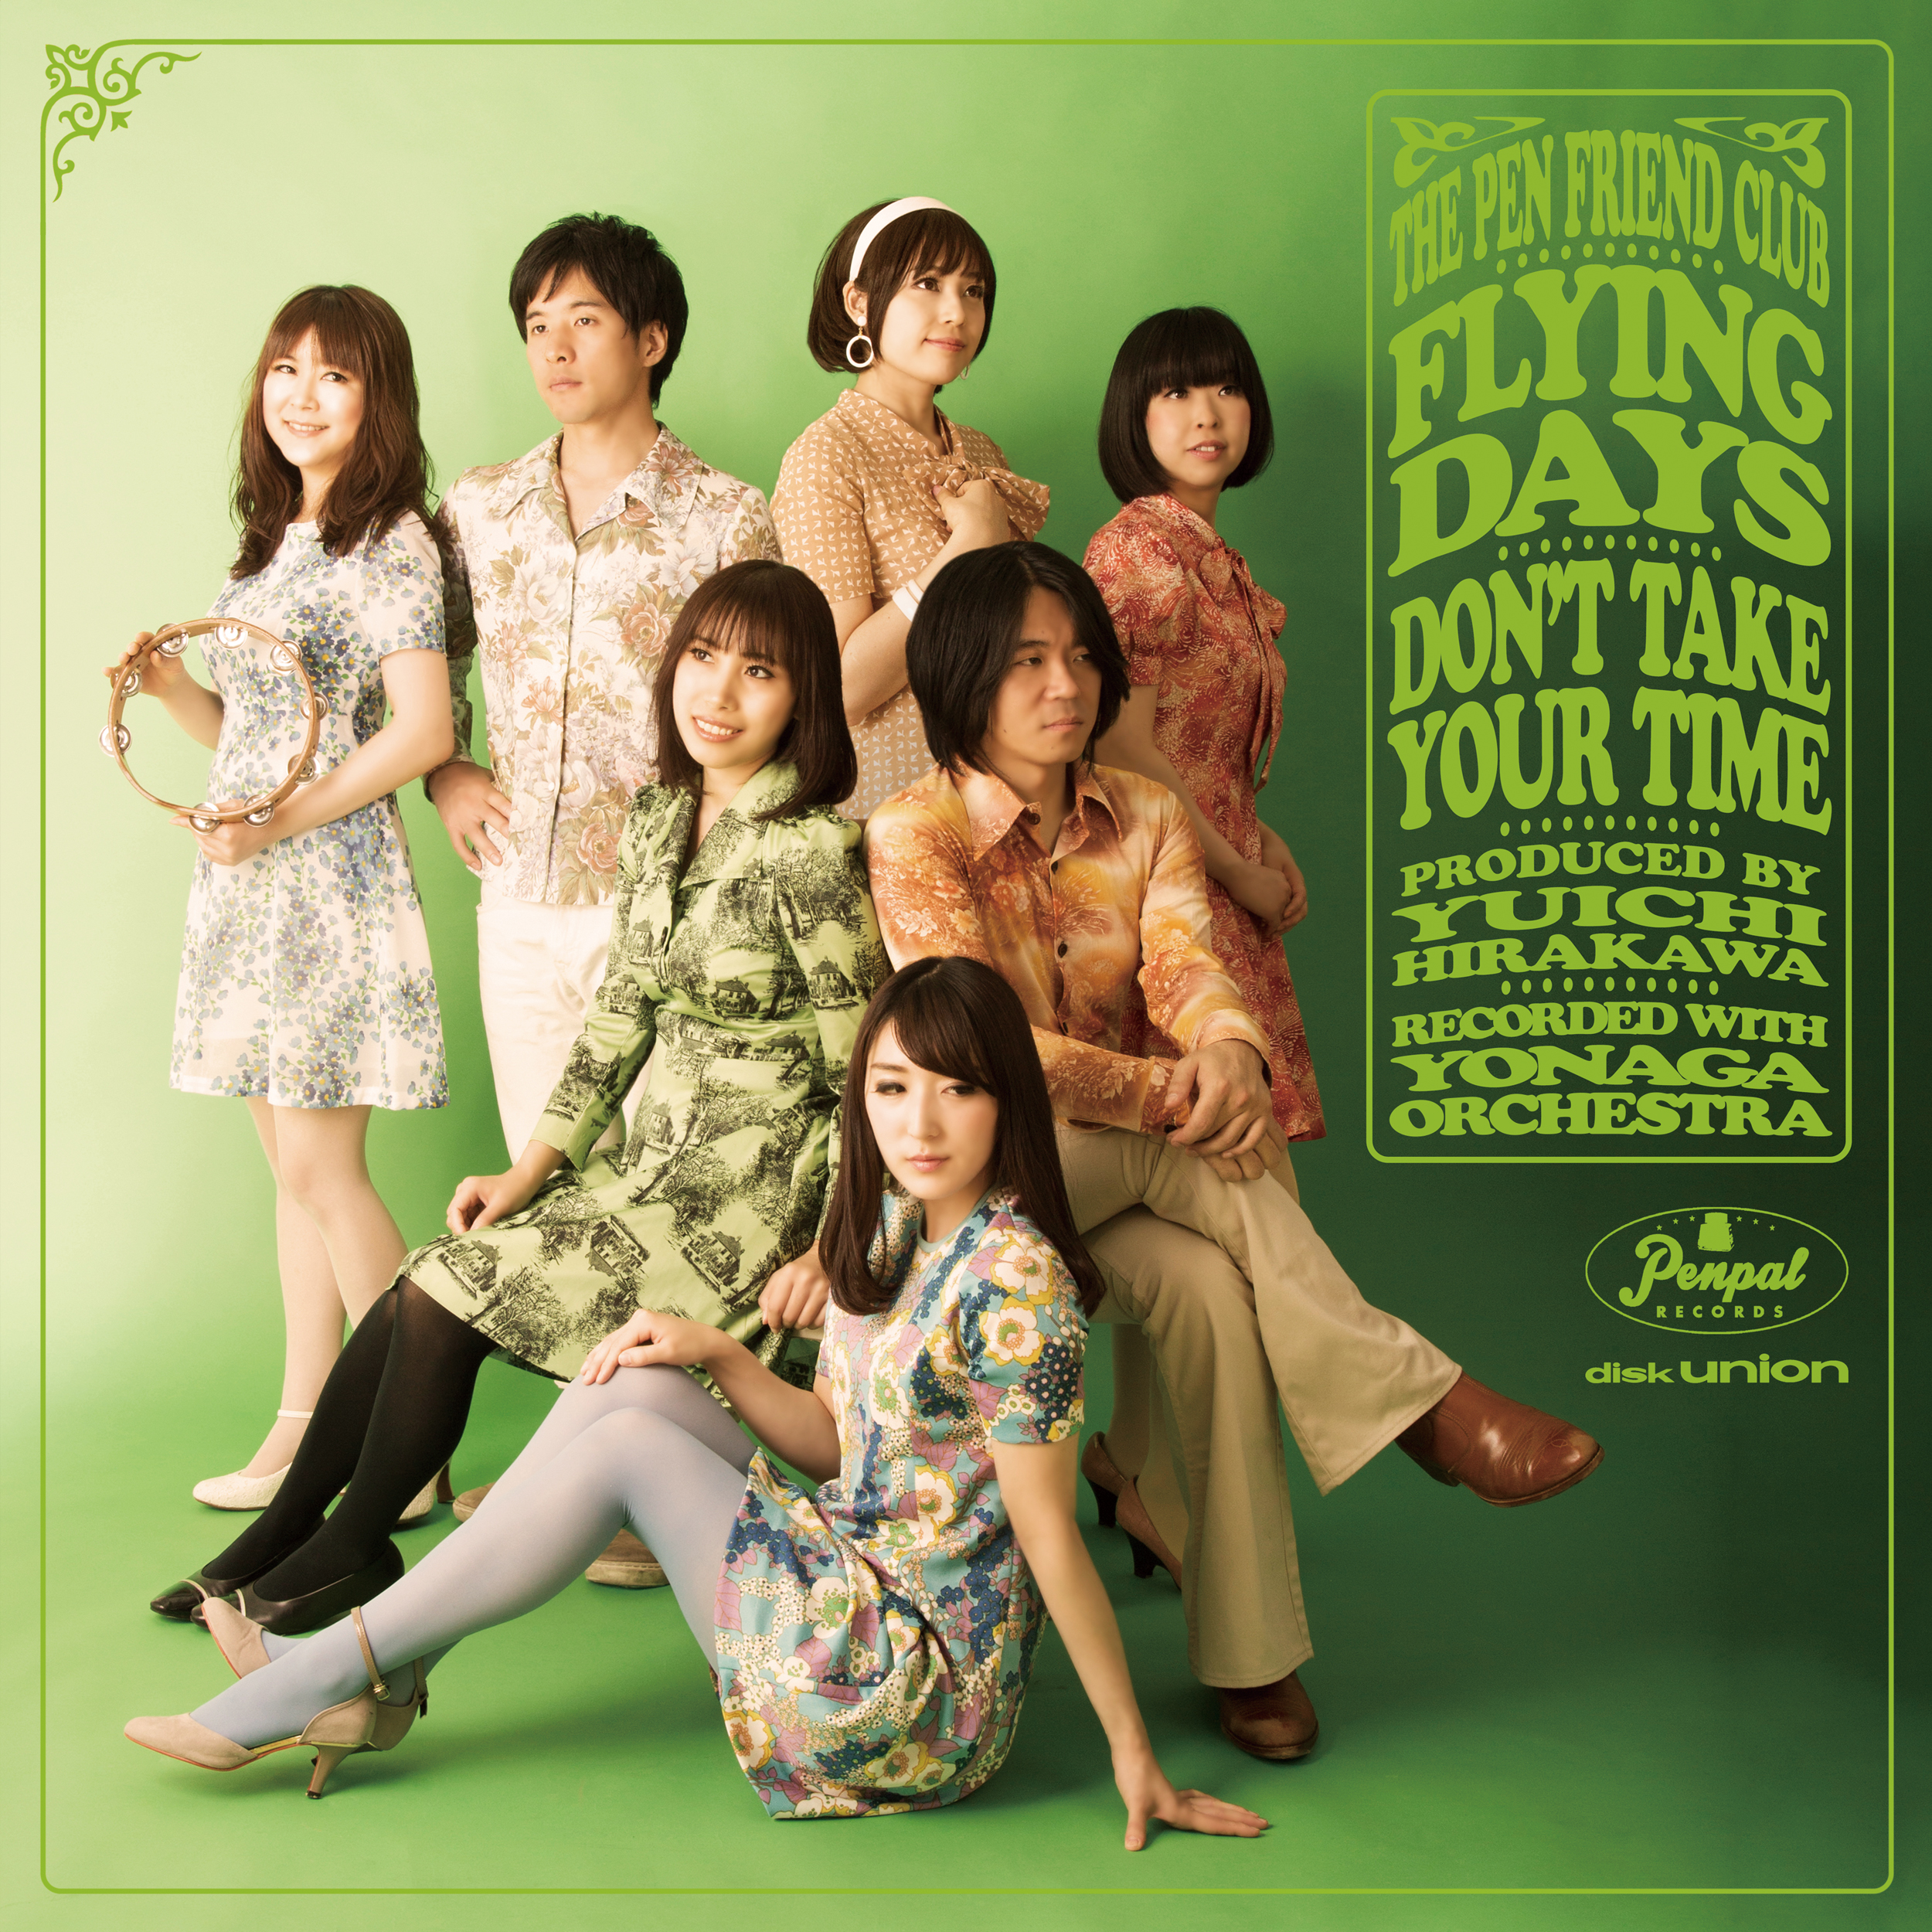 040_The Pen Friend Club「飛翔する日常/Don't Take Your Time」